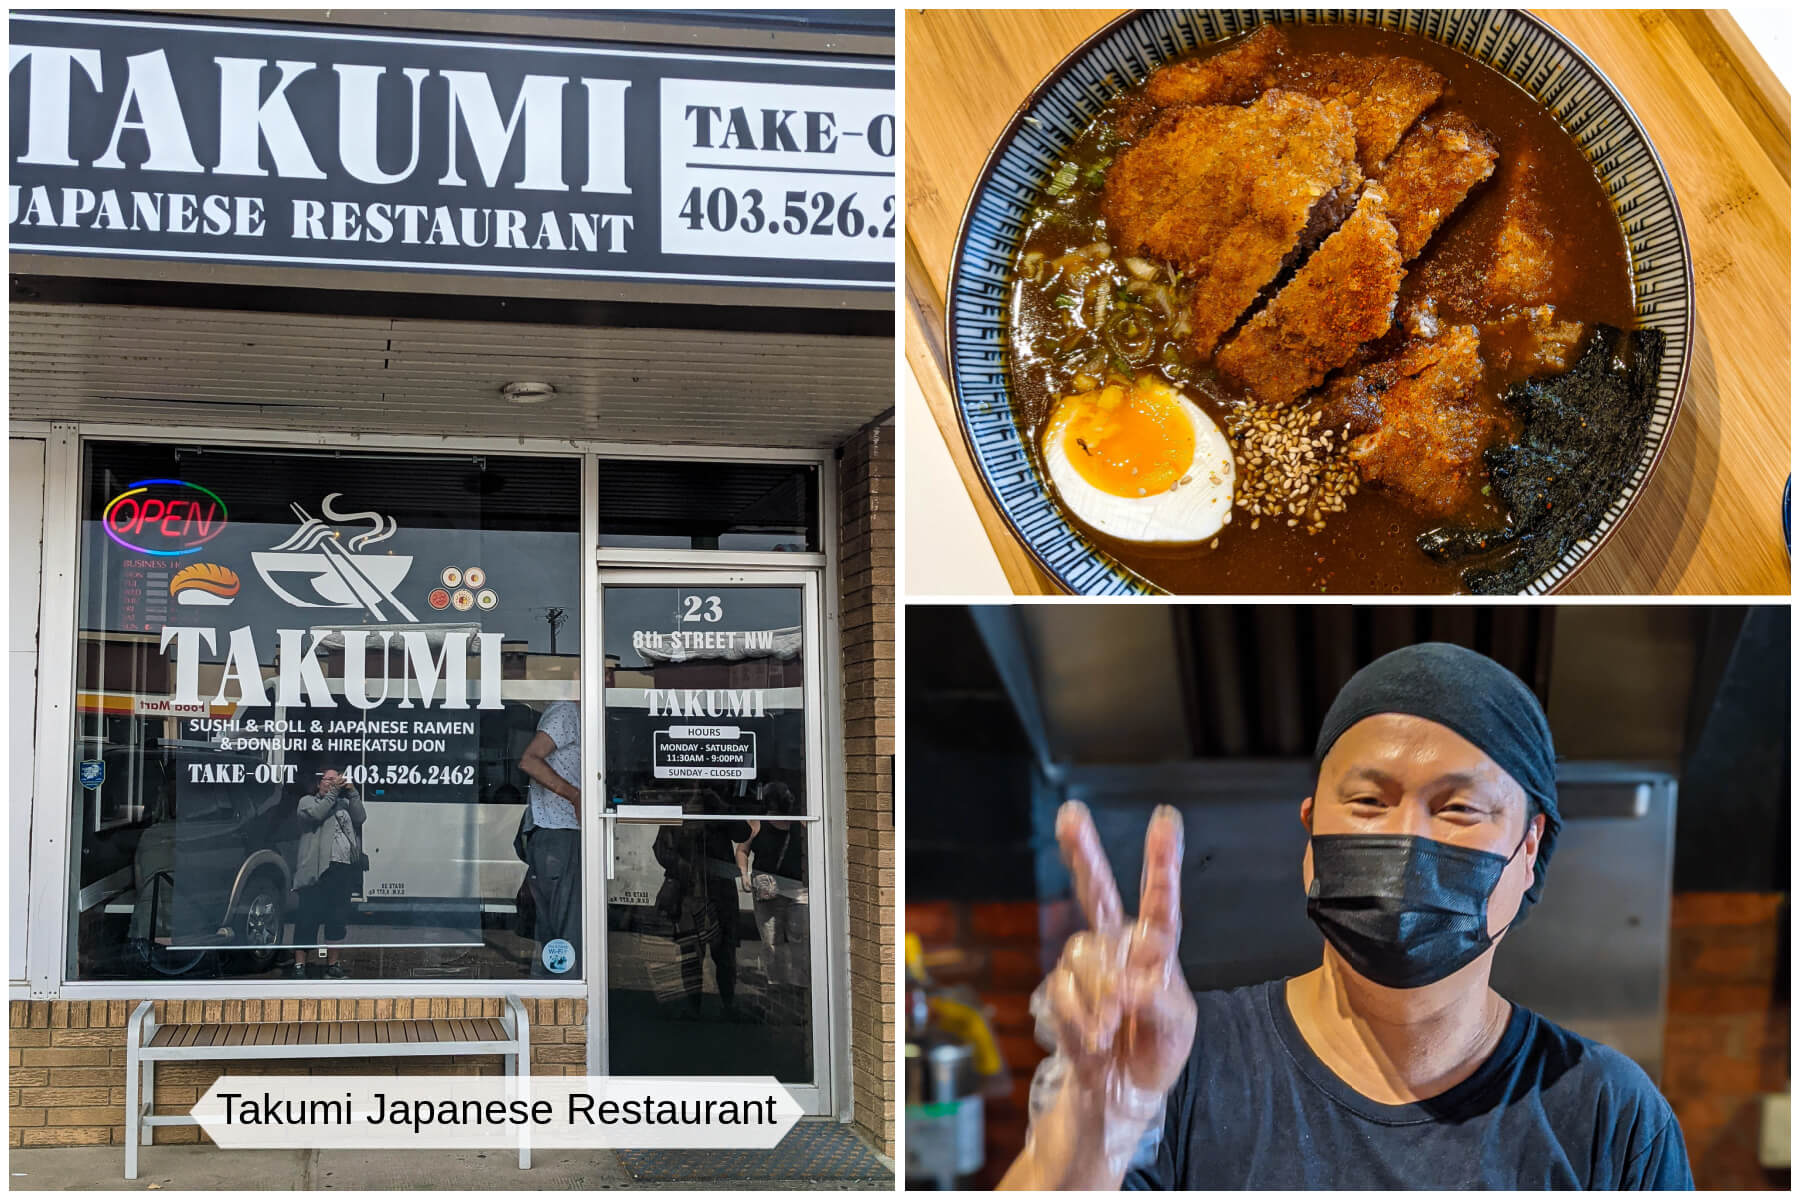 A collection of image from Takumi Japanese Restaurant in Medicine Hat, Alberta.